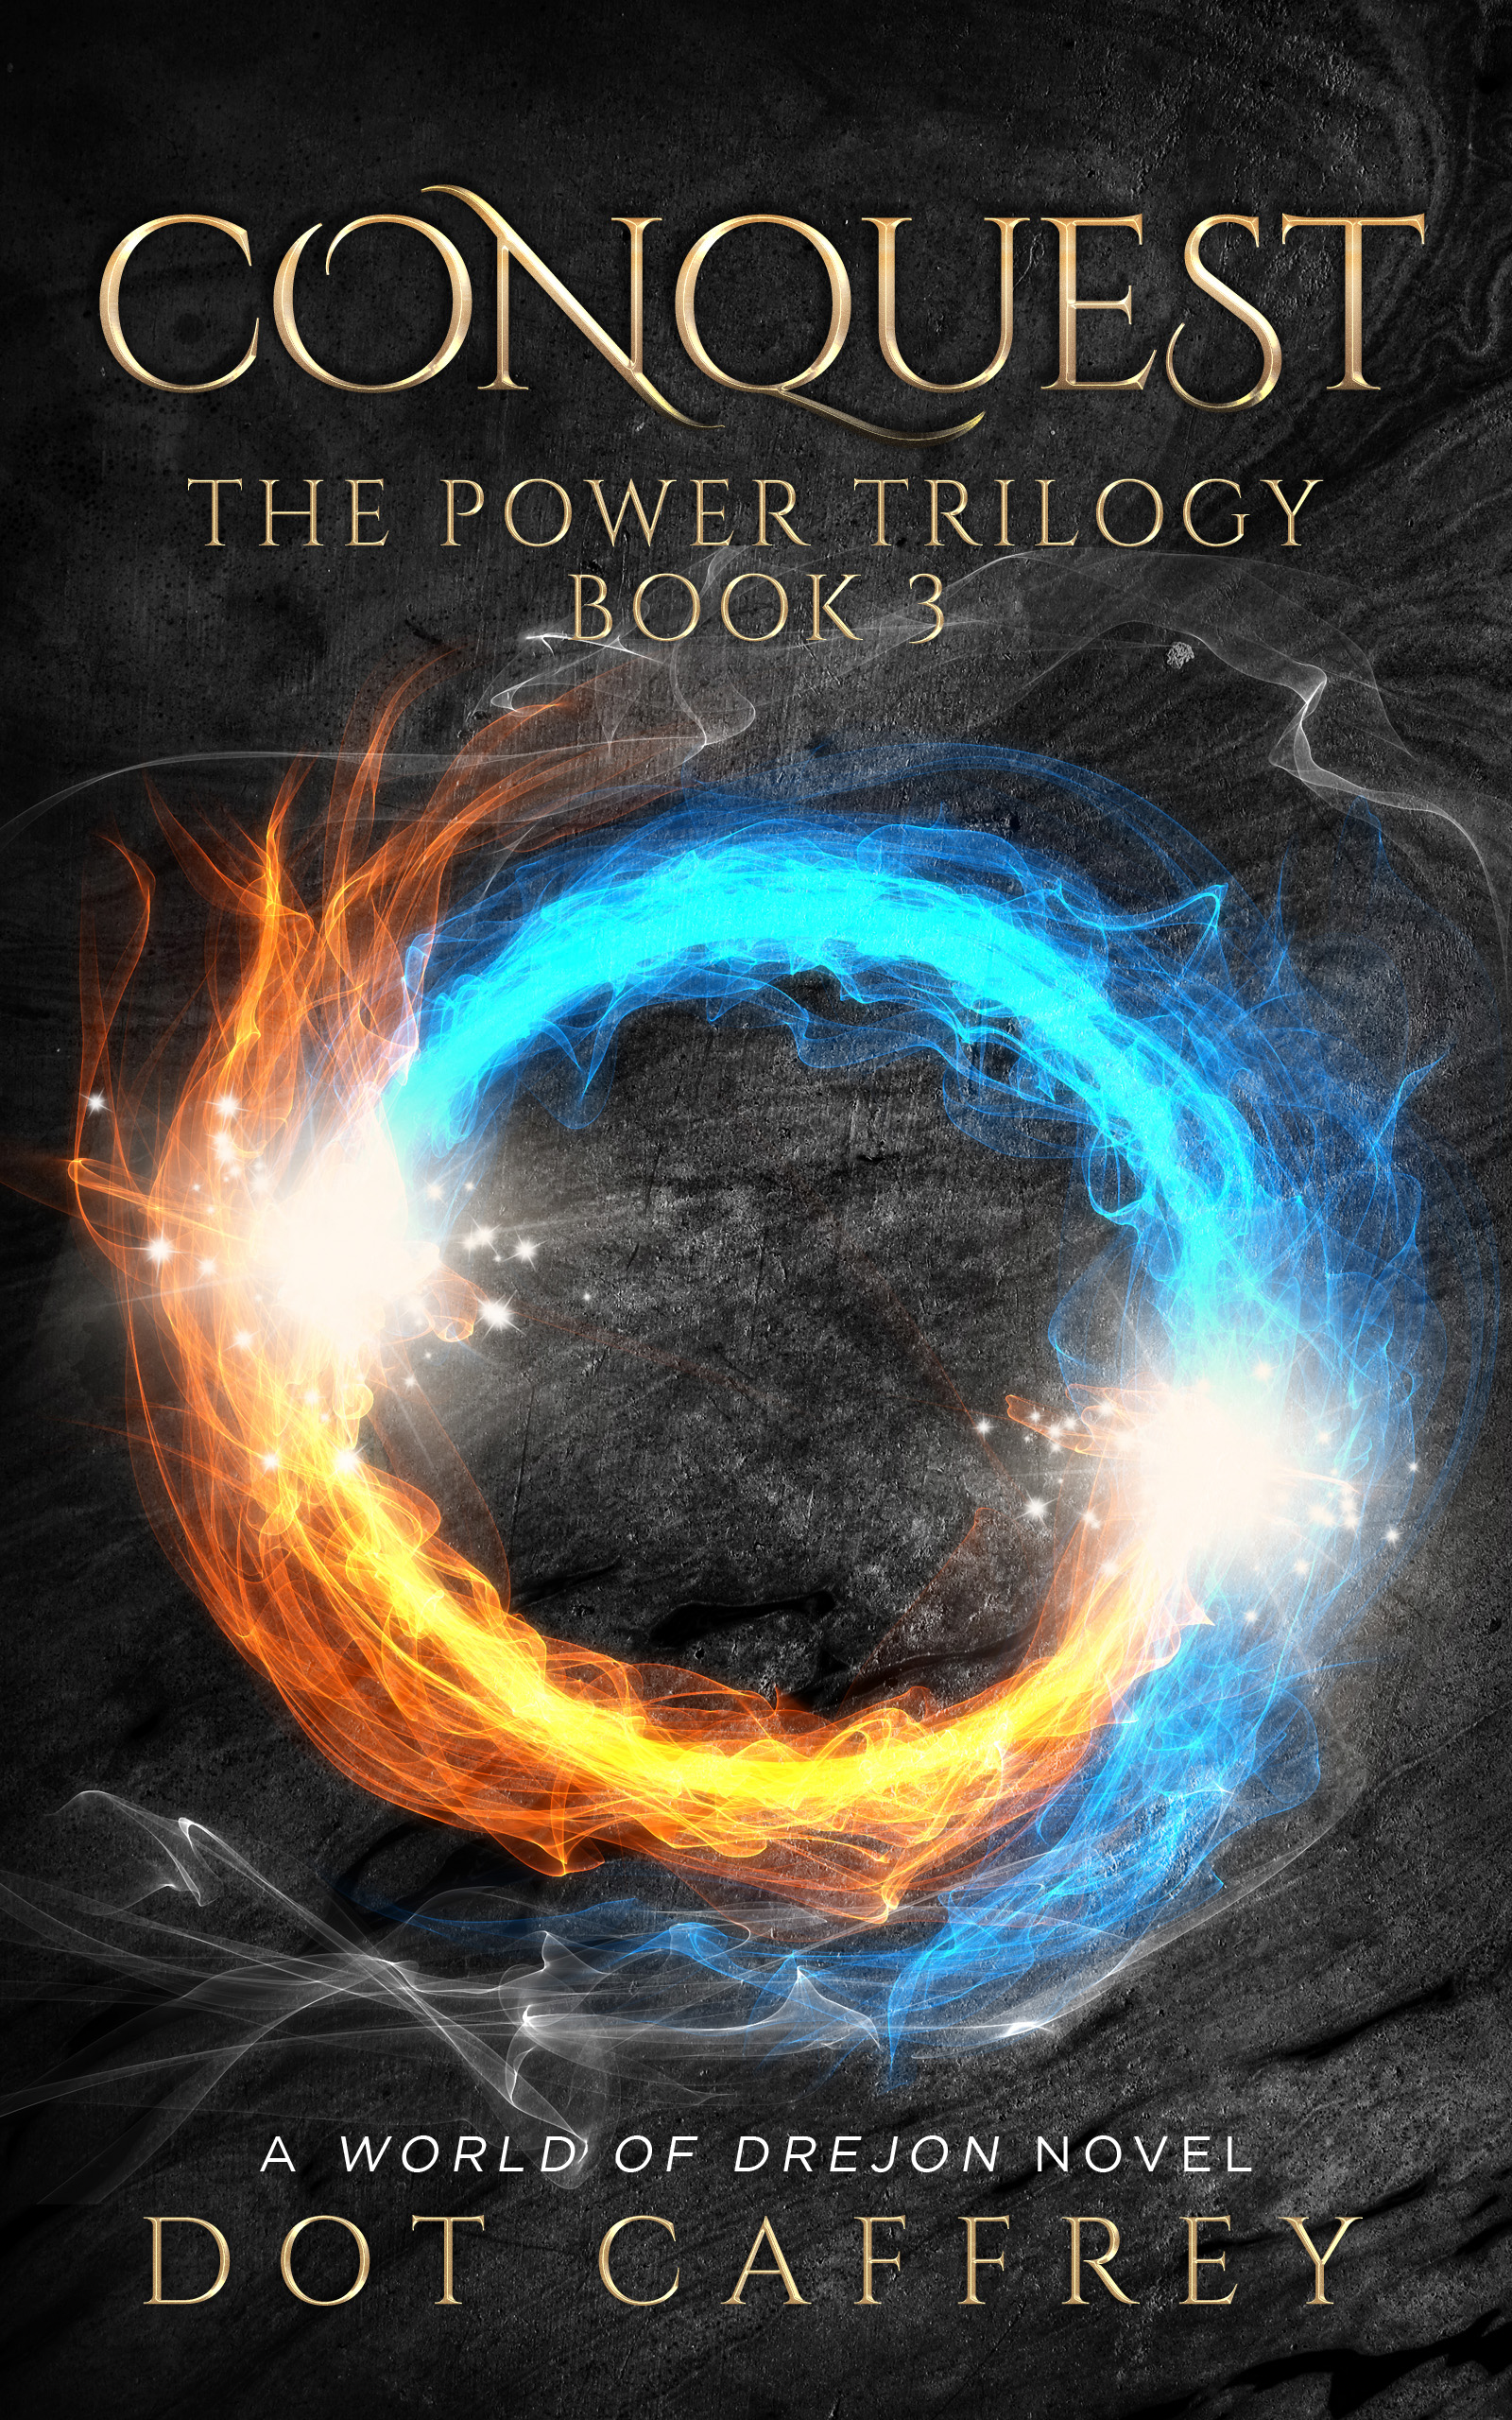 Conquest-The-Power-Trilogy-Book-3-001